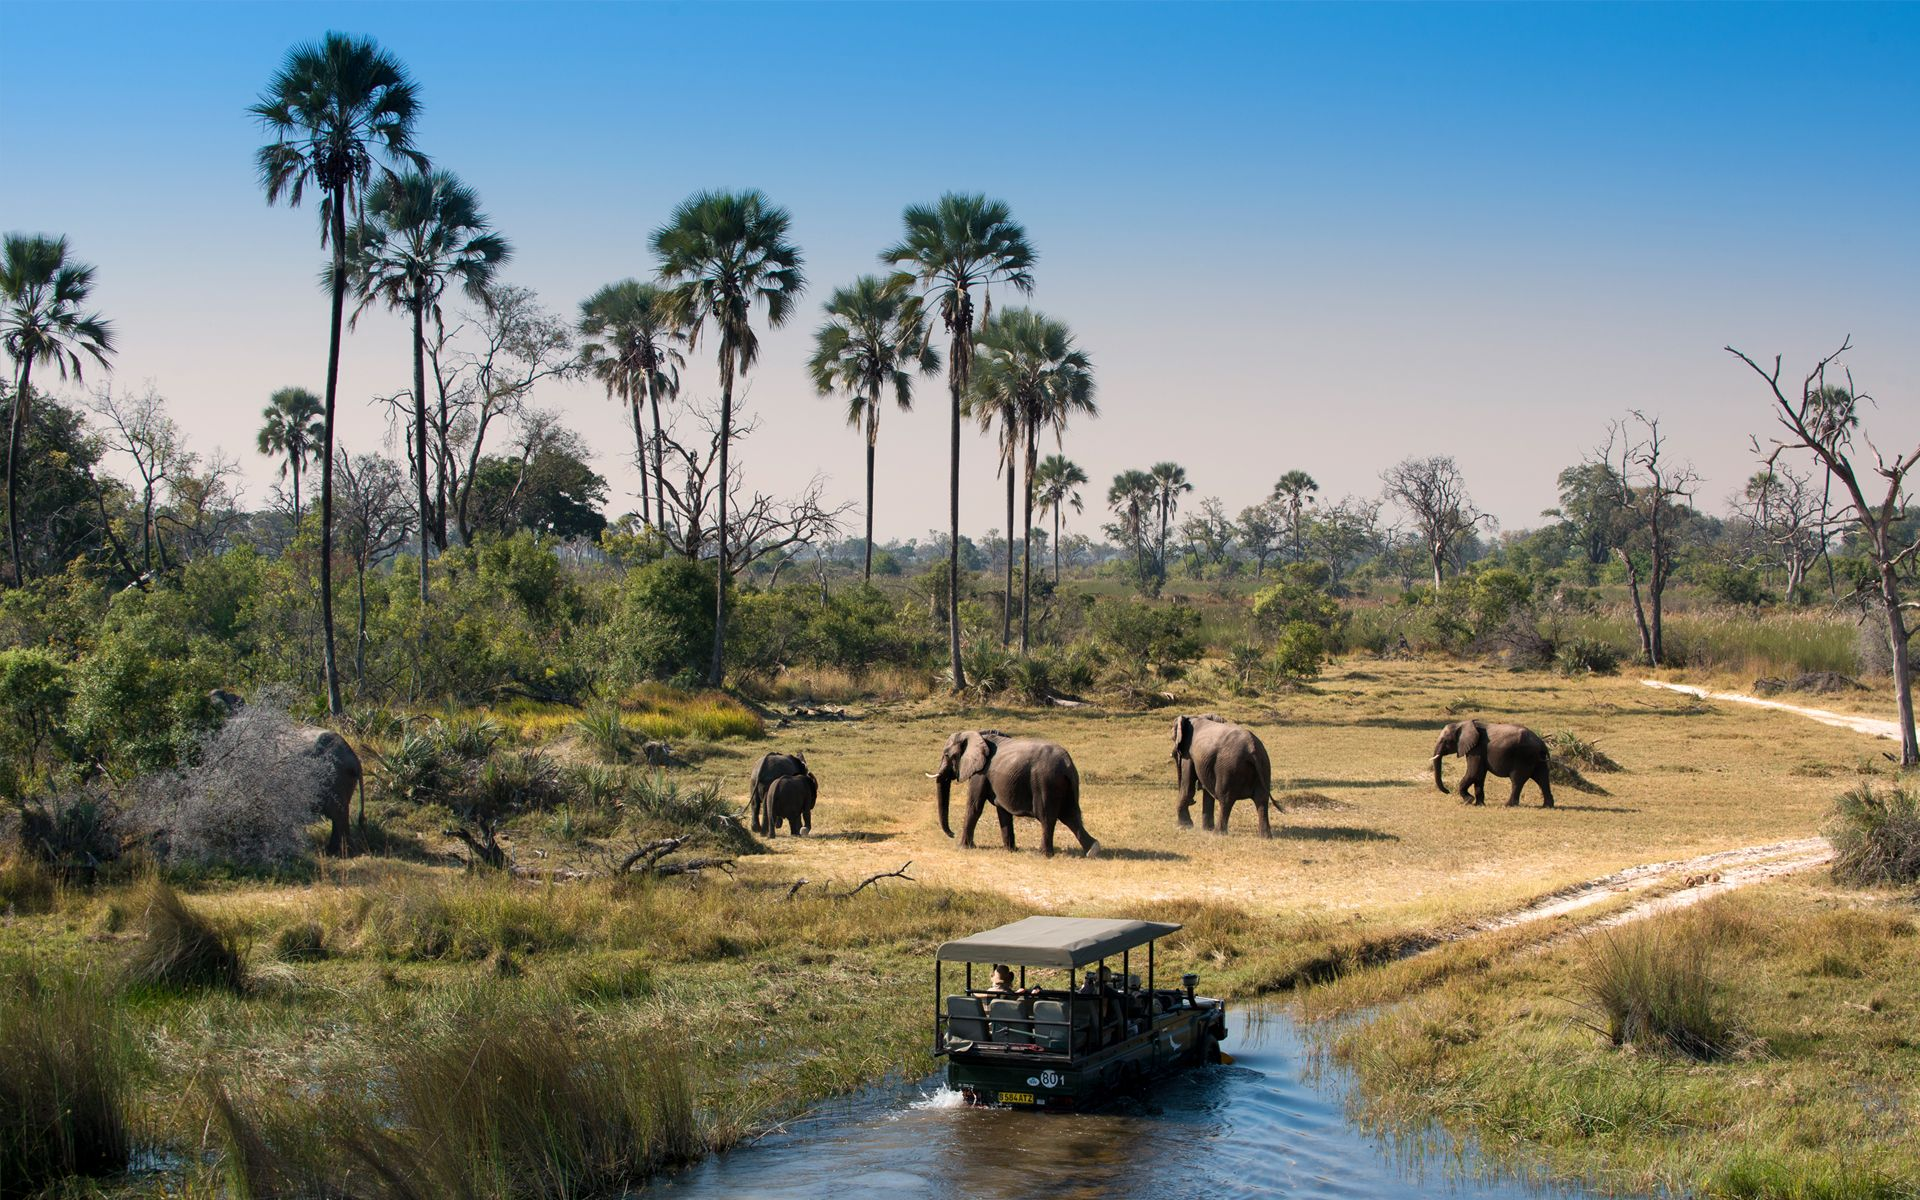 Elephant are abundant throughout Botswana